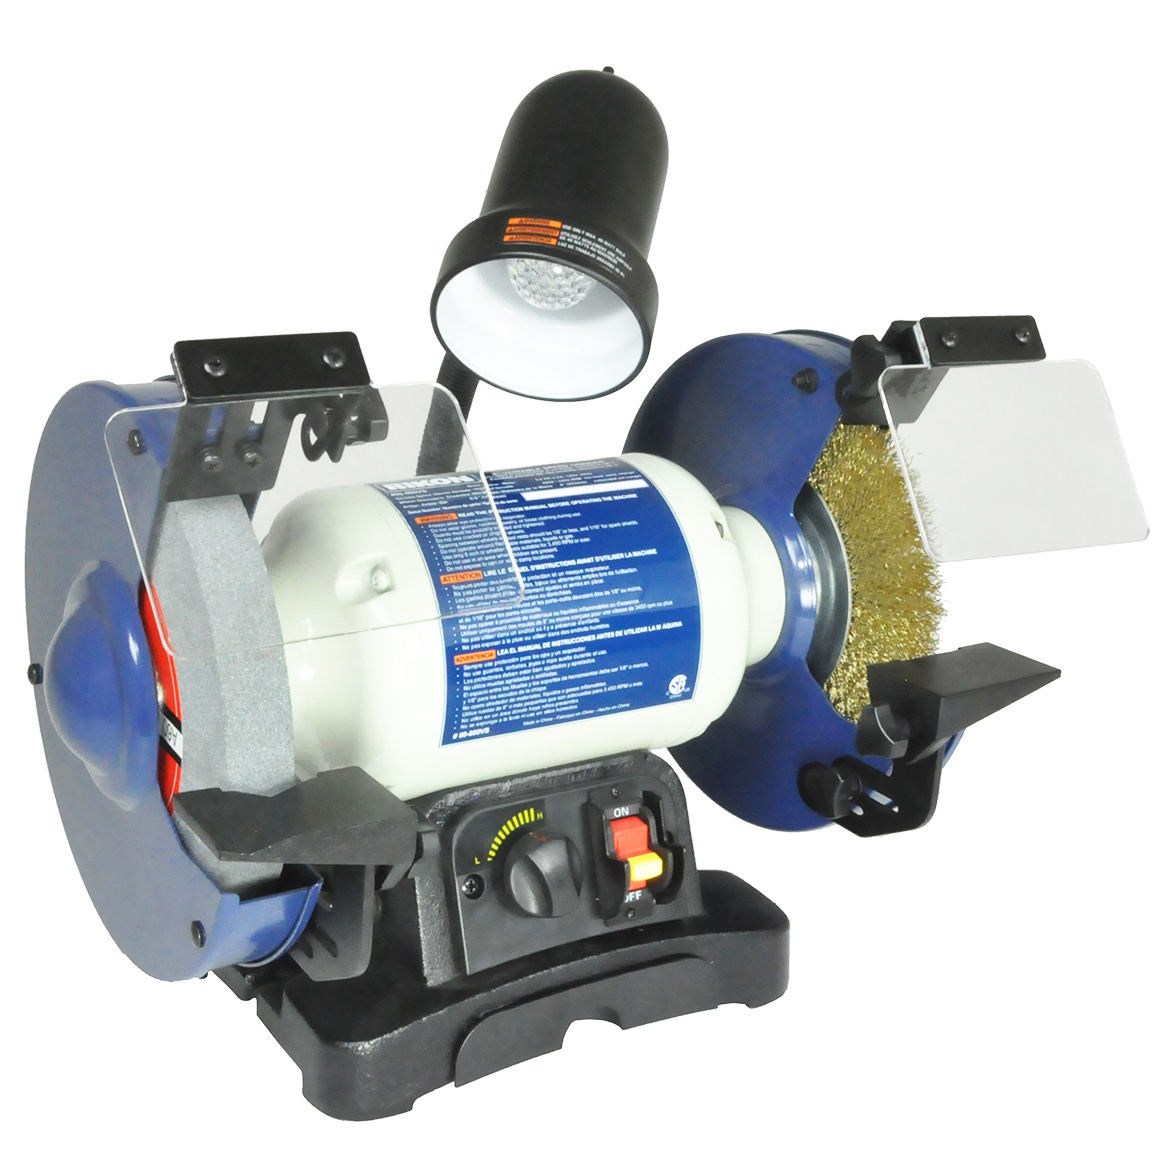 Rikon 80 800vs 8 Inch 3 4 Hp Variable Speed Dual Wheel